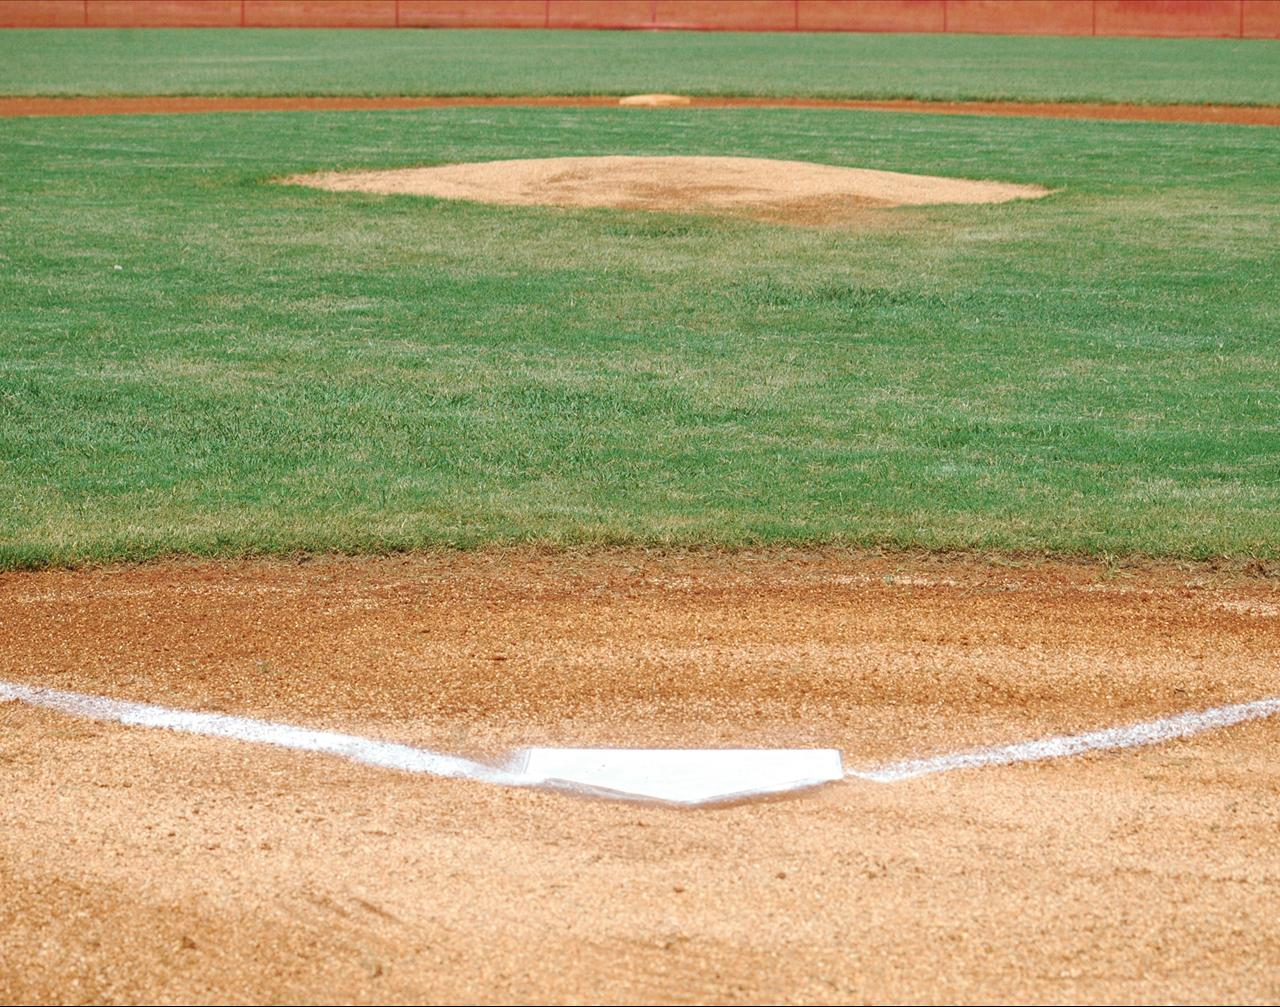 Gallery For gt Baseball Field Background Hd 1280x1007